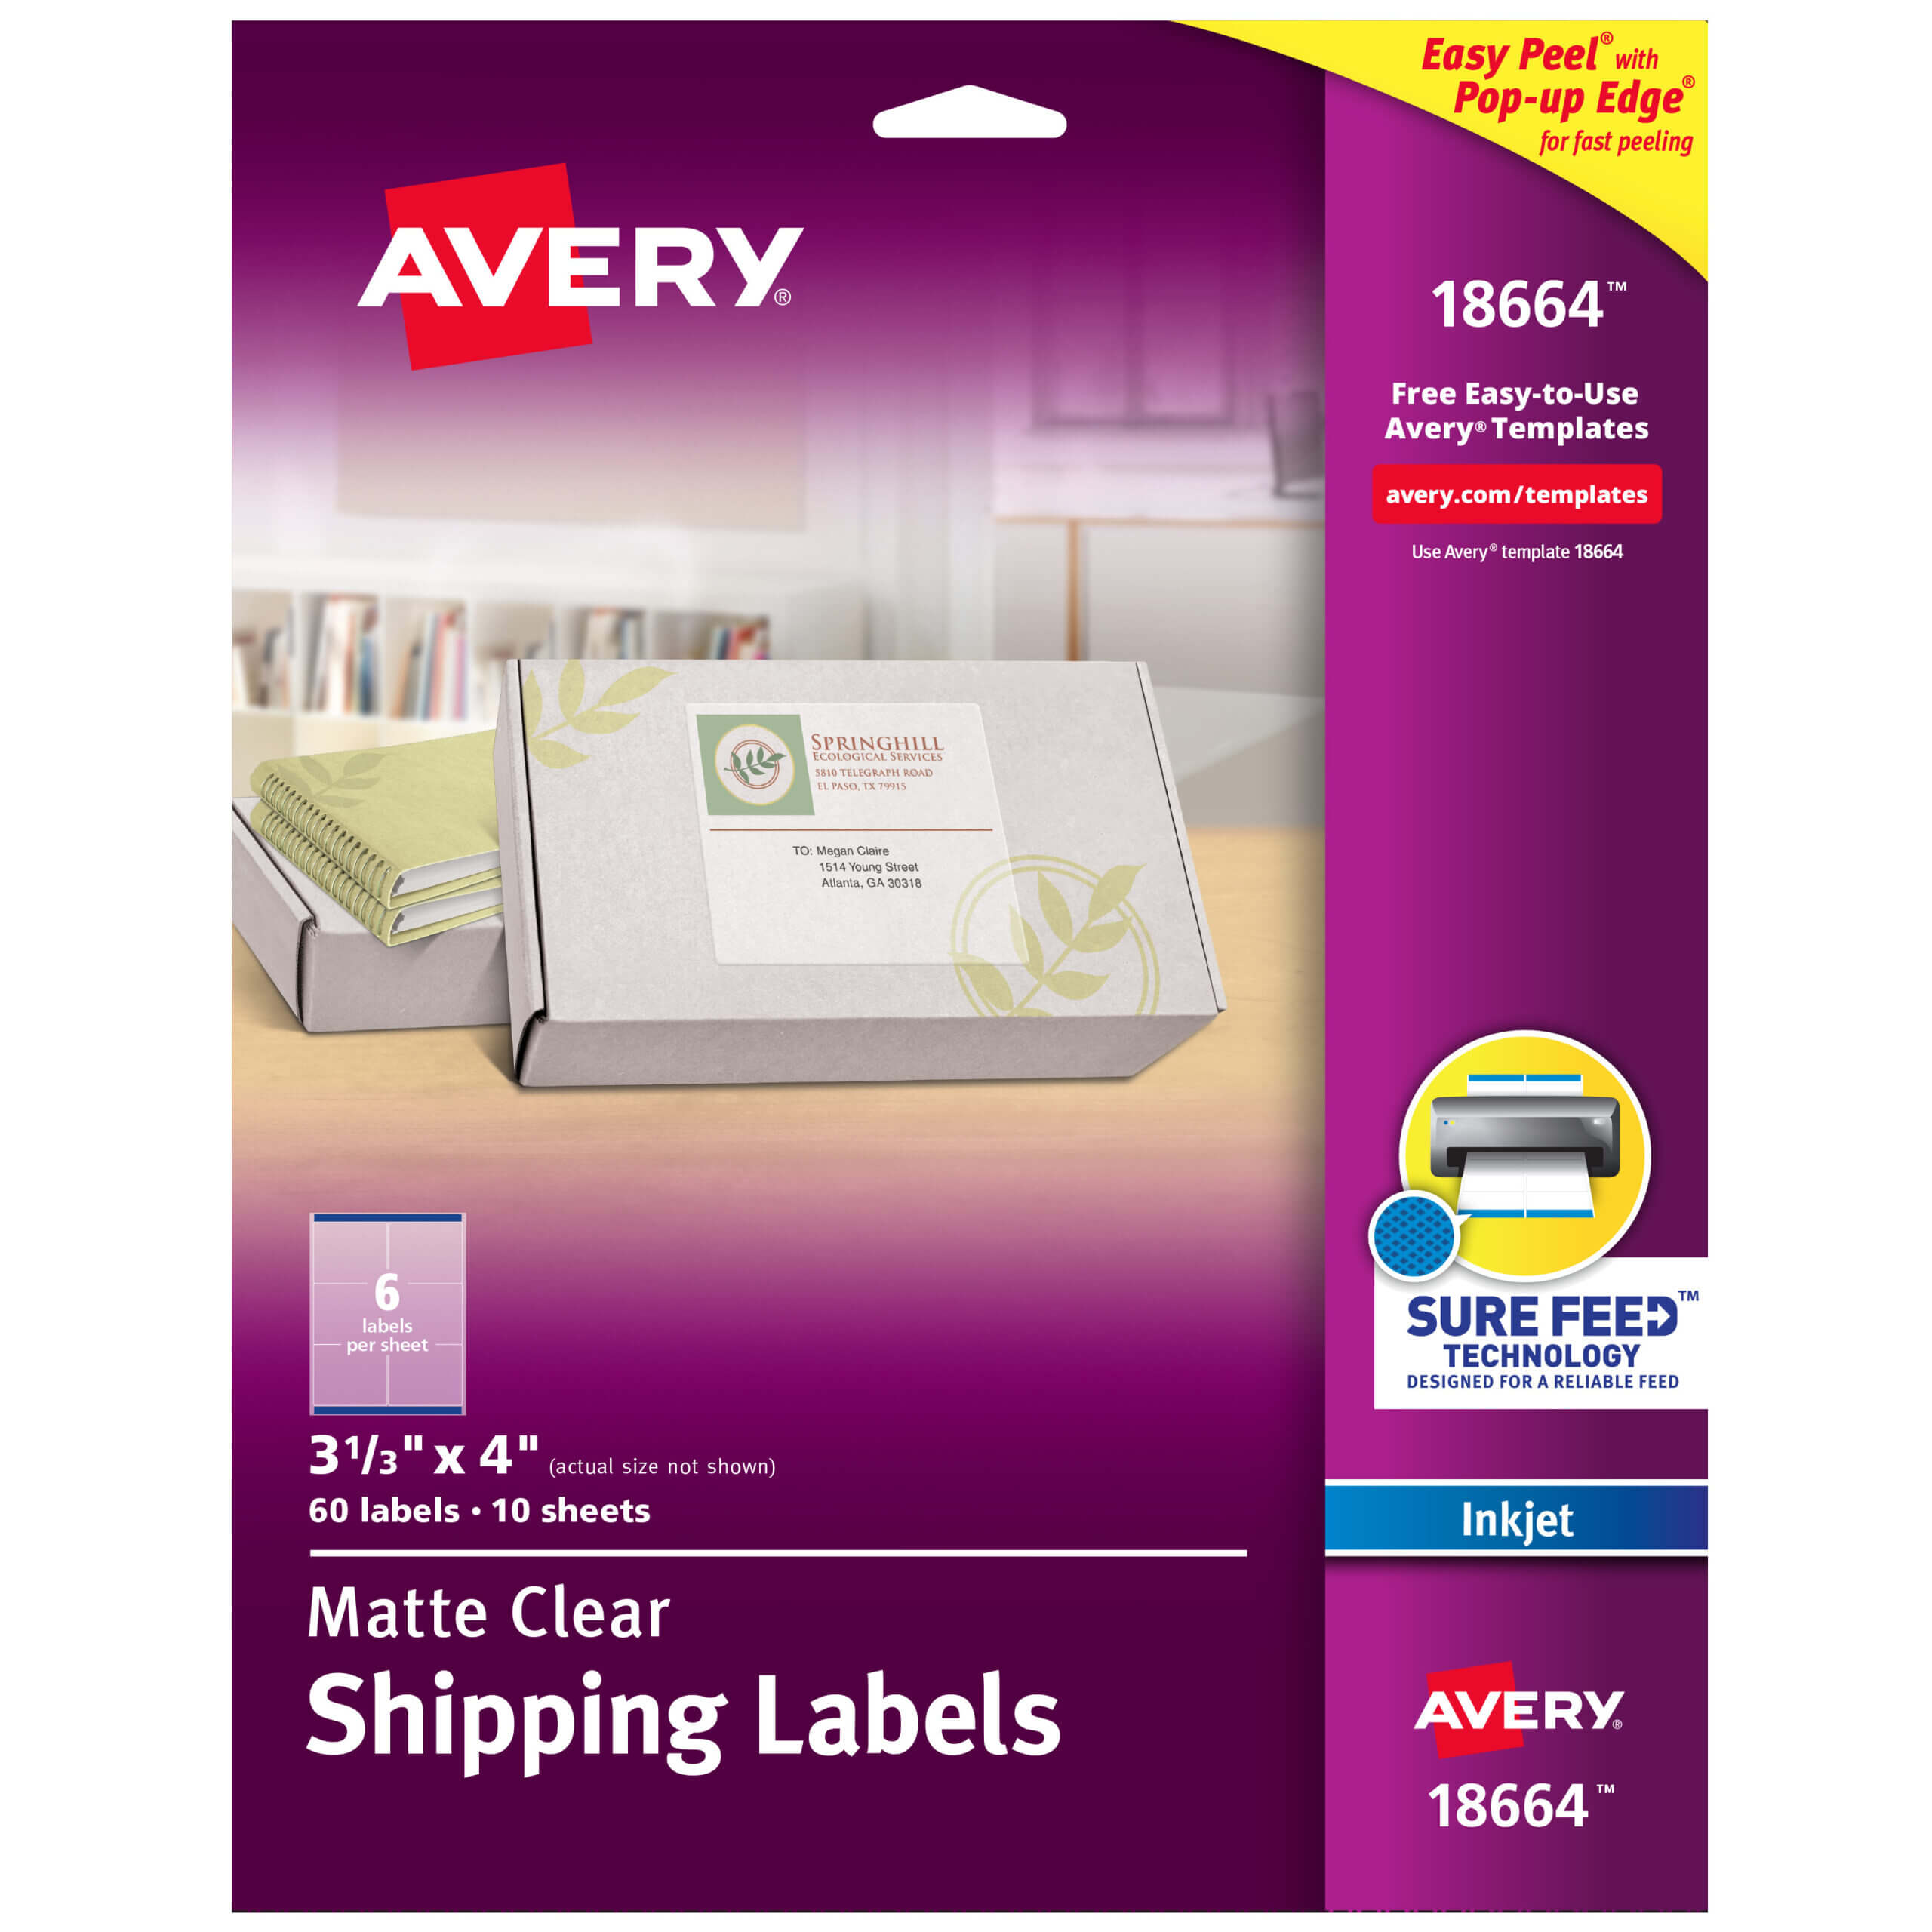 "Avery Matte Clear Shipping Labels, Sure Feed Technology, Inkjet, 3 1/3"" X  4"", 60 Labels (18664) – Walmart With 3 Labels Per Sheet Template"